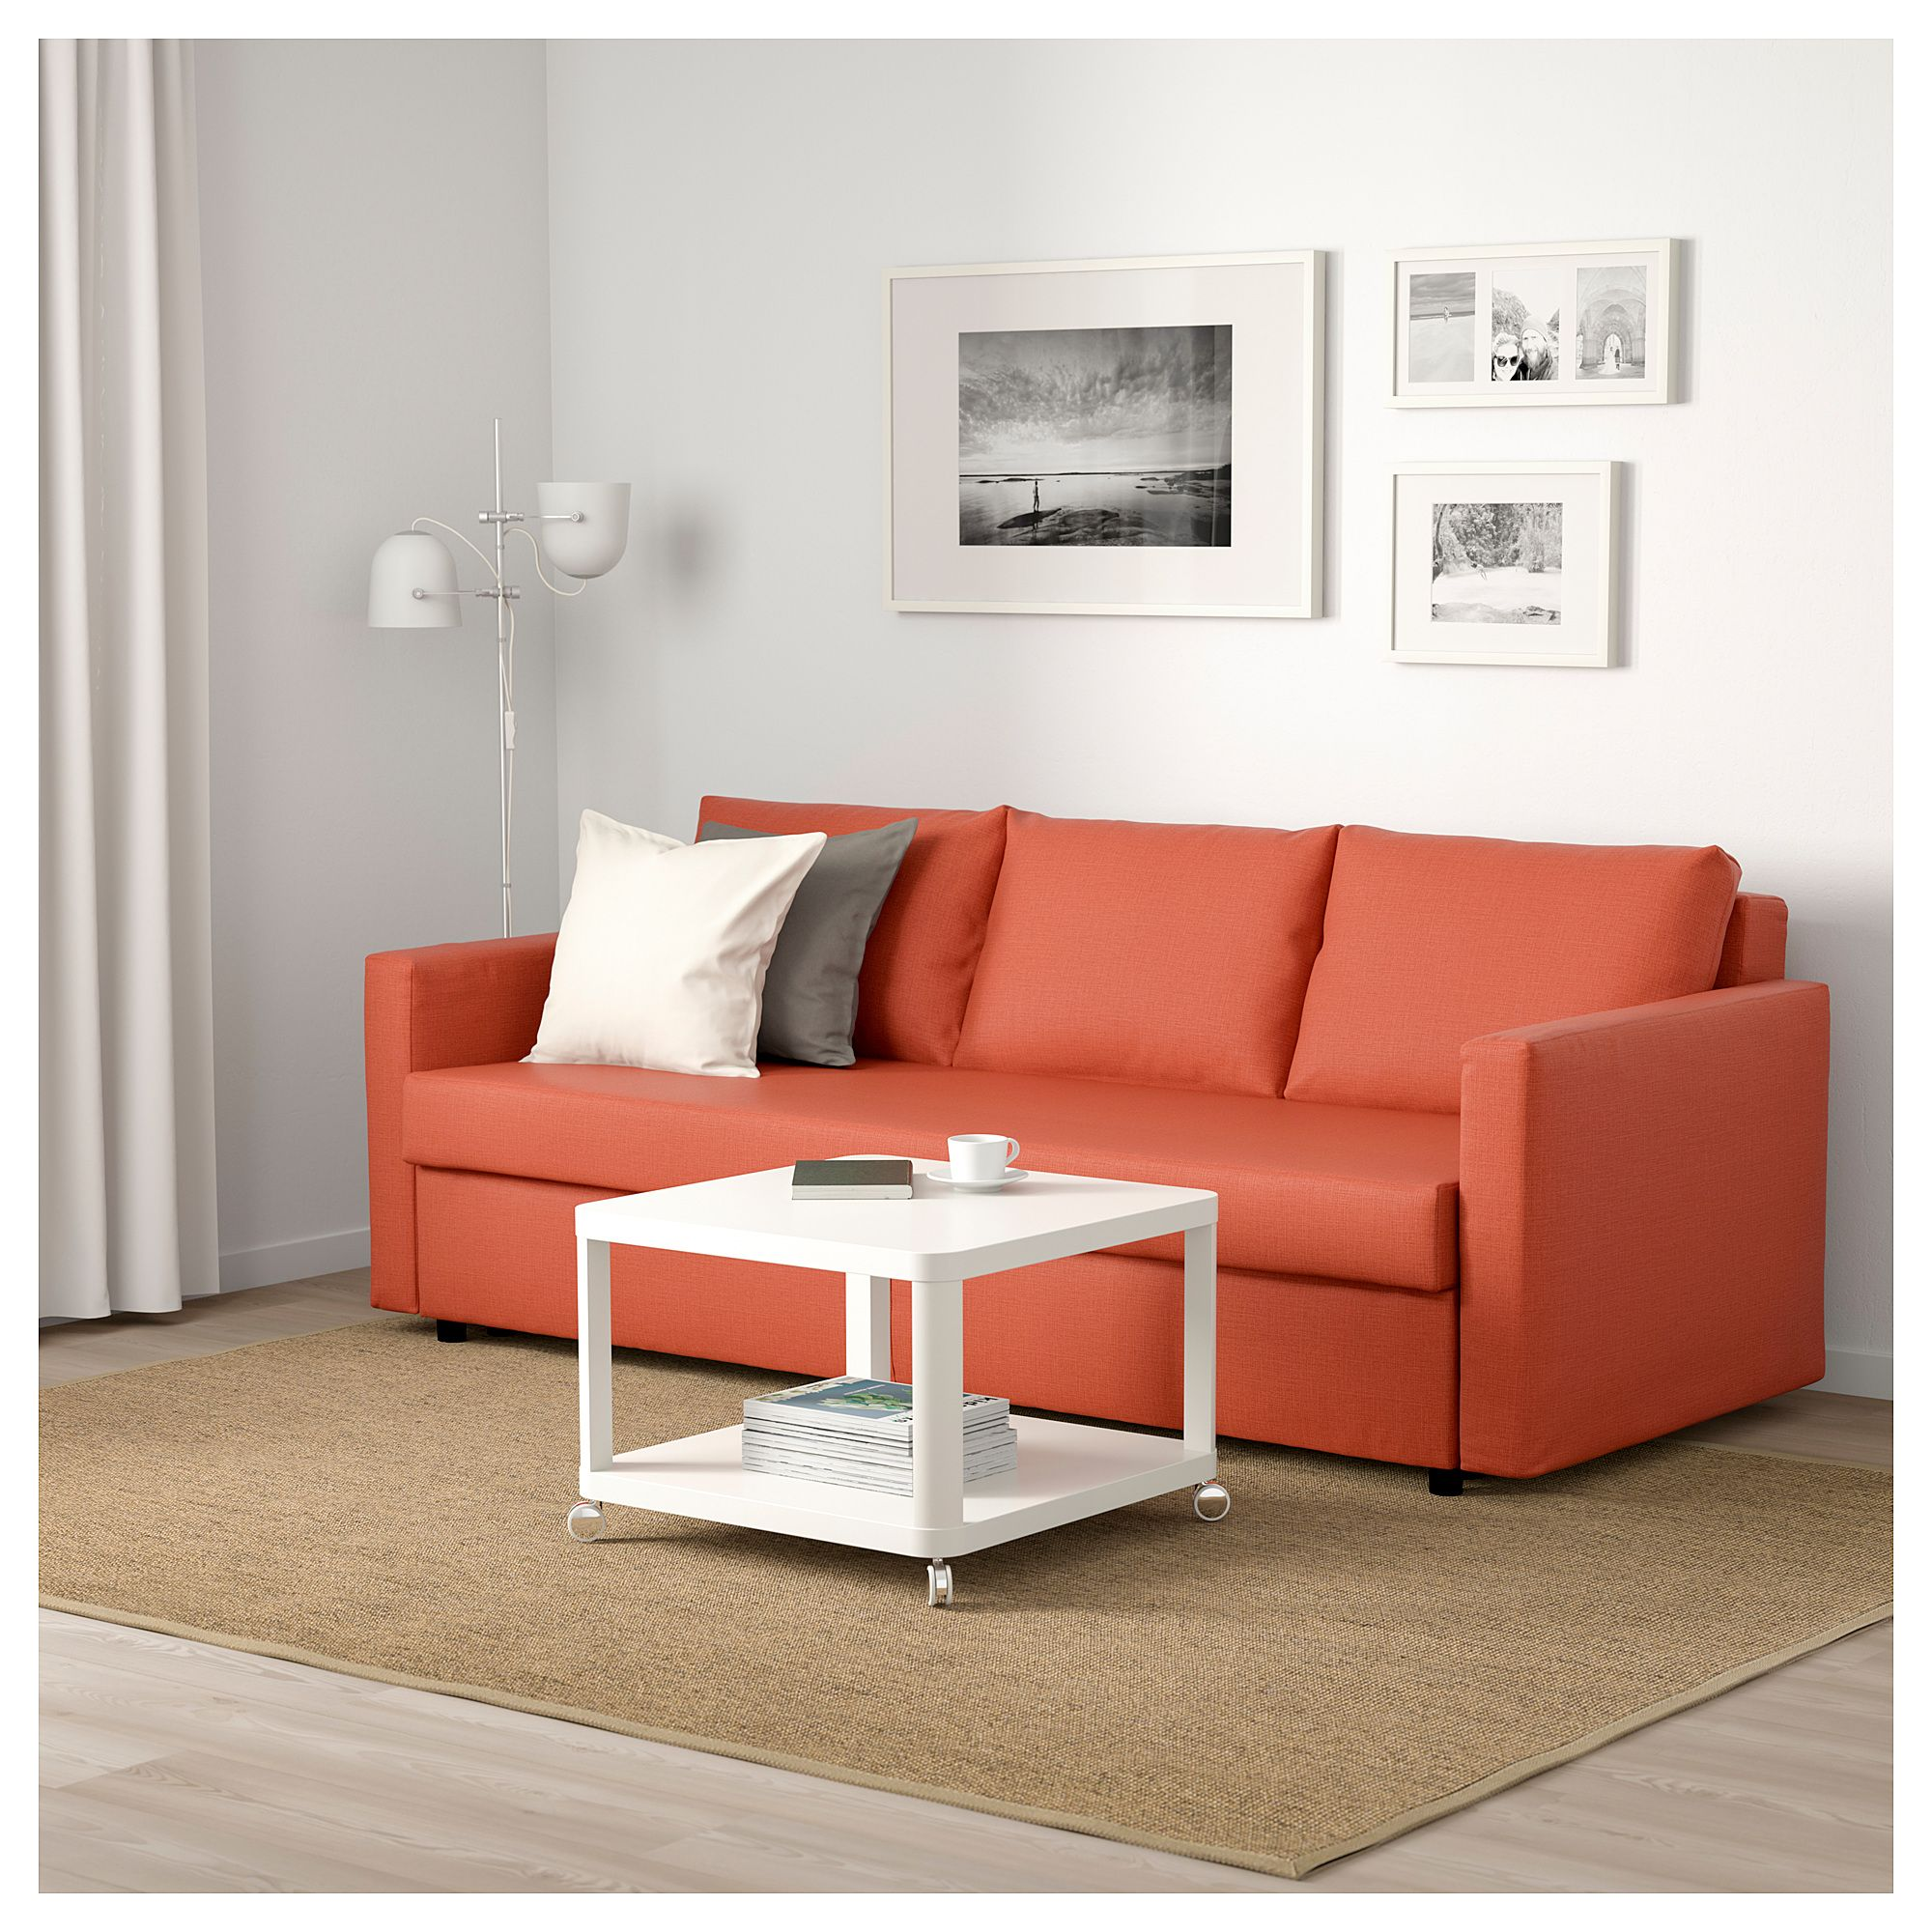 Marvelous Furniture And Home Furnishings Ikea Corner Sofa Bed Bralicious Painted Fabric Chair Ideas Braliciousco